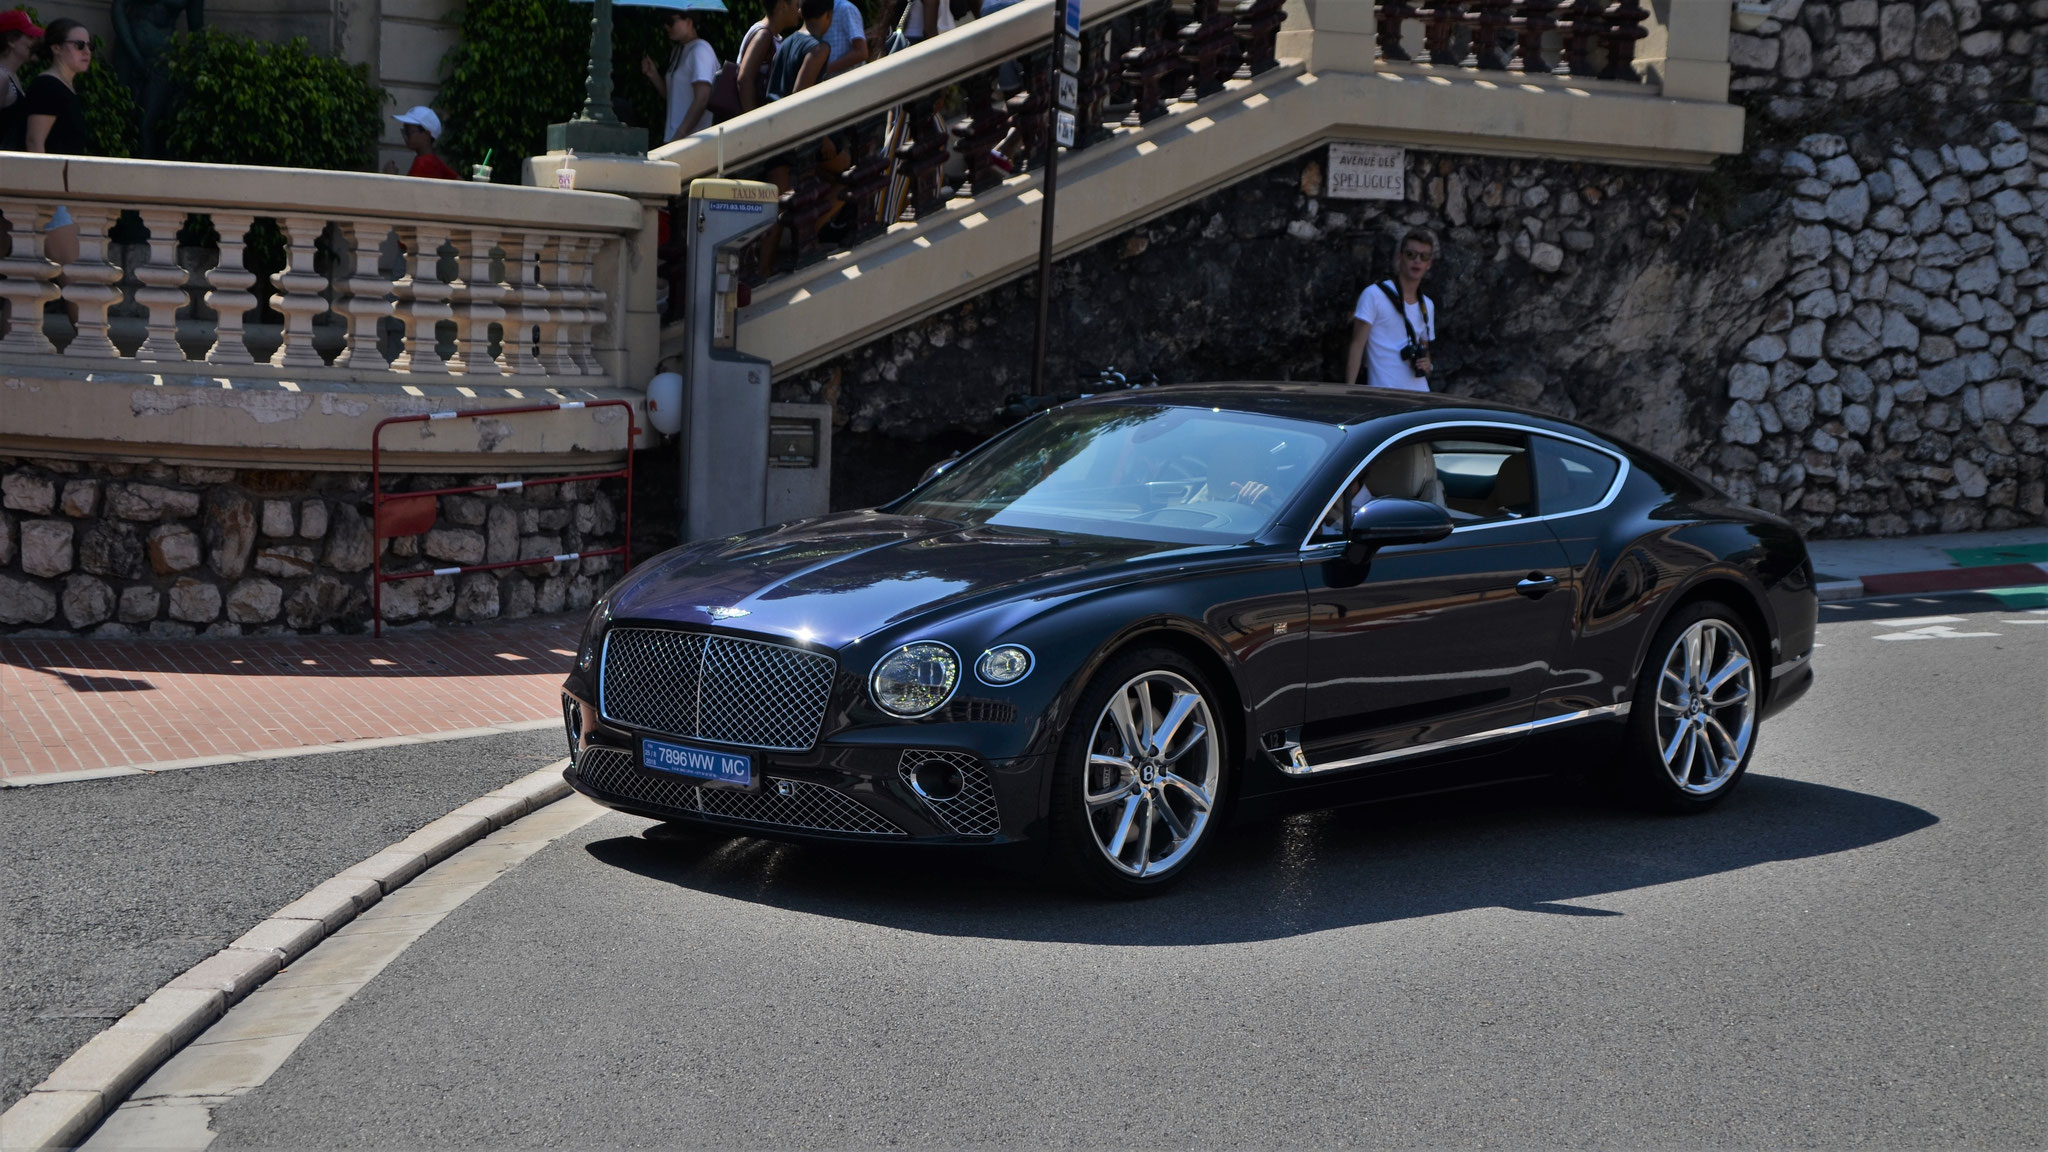 Bentley Continental GT - 7896-WW-MC (MC)